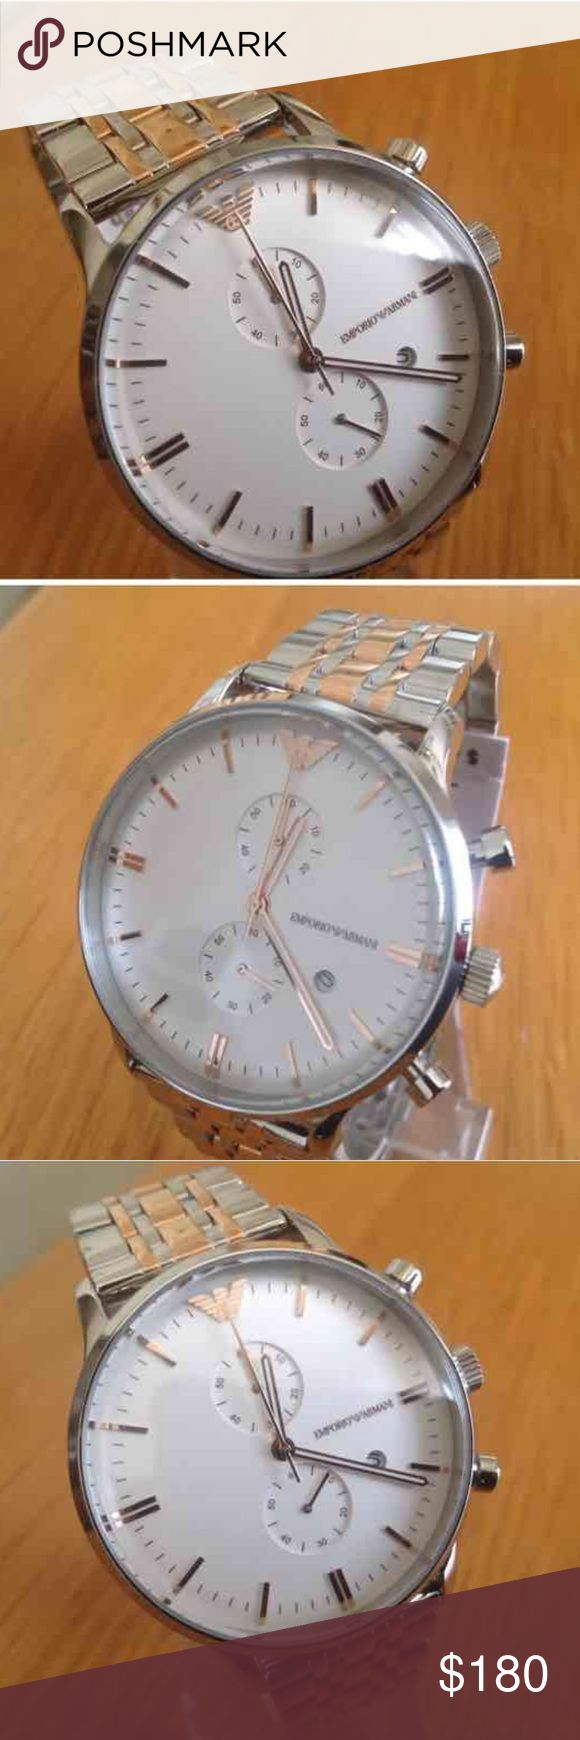 Mens watch Stunning men's silver watch with a RoseGold inlay. Case Size 44mm   Band Width 22mm Retail $445.00 Accessories Watches